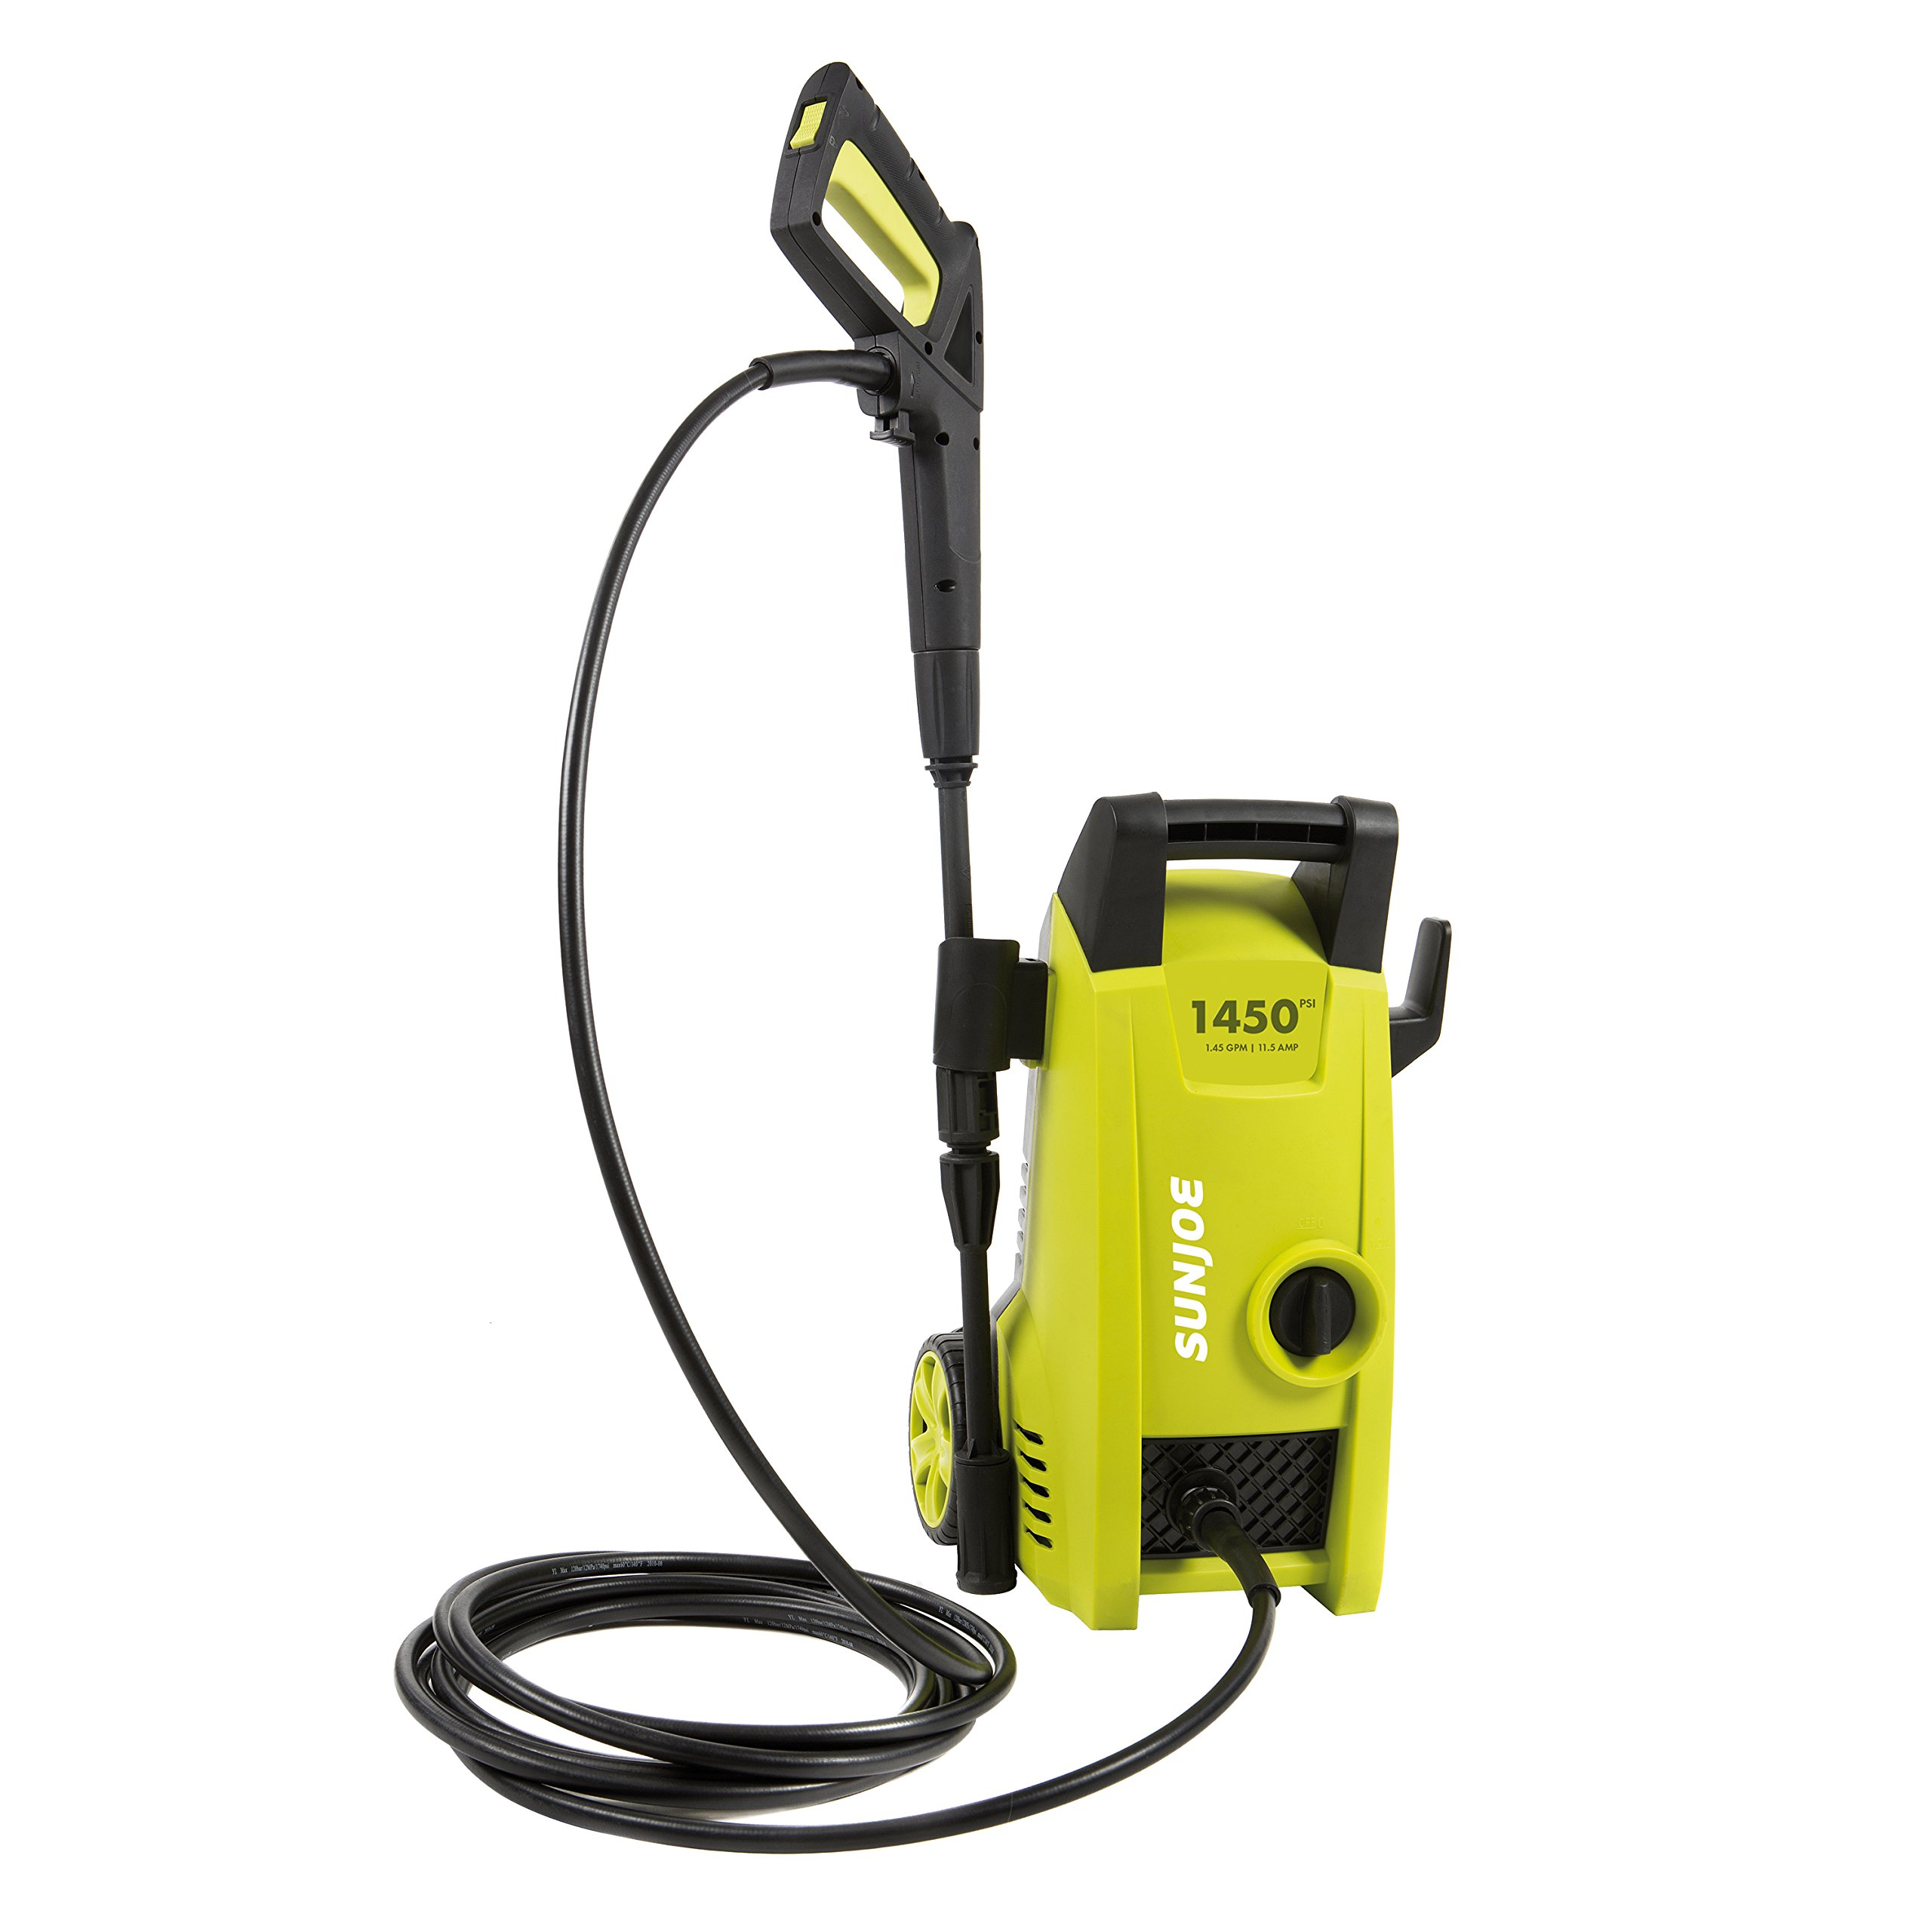 home pressure washer buying guide